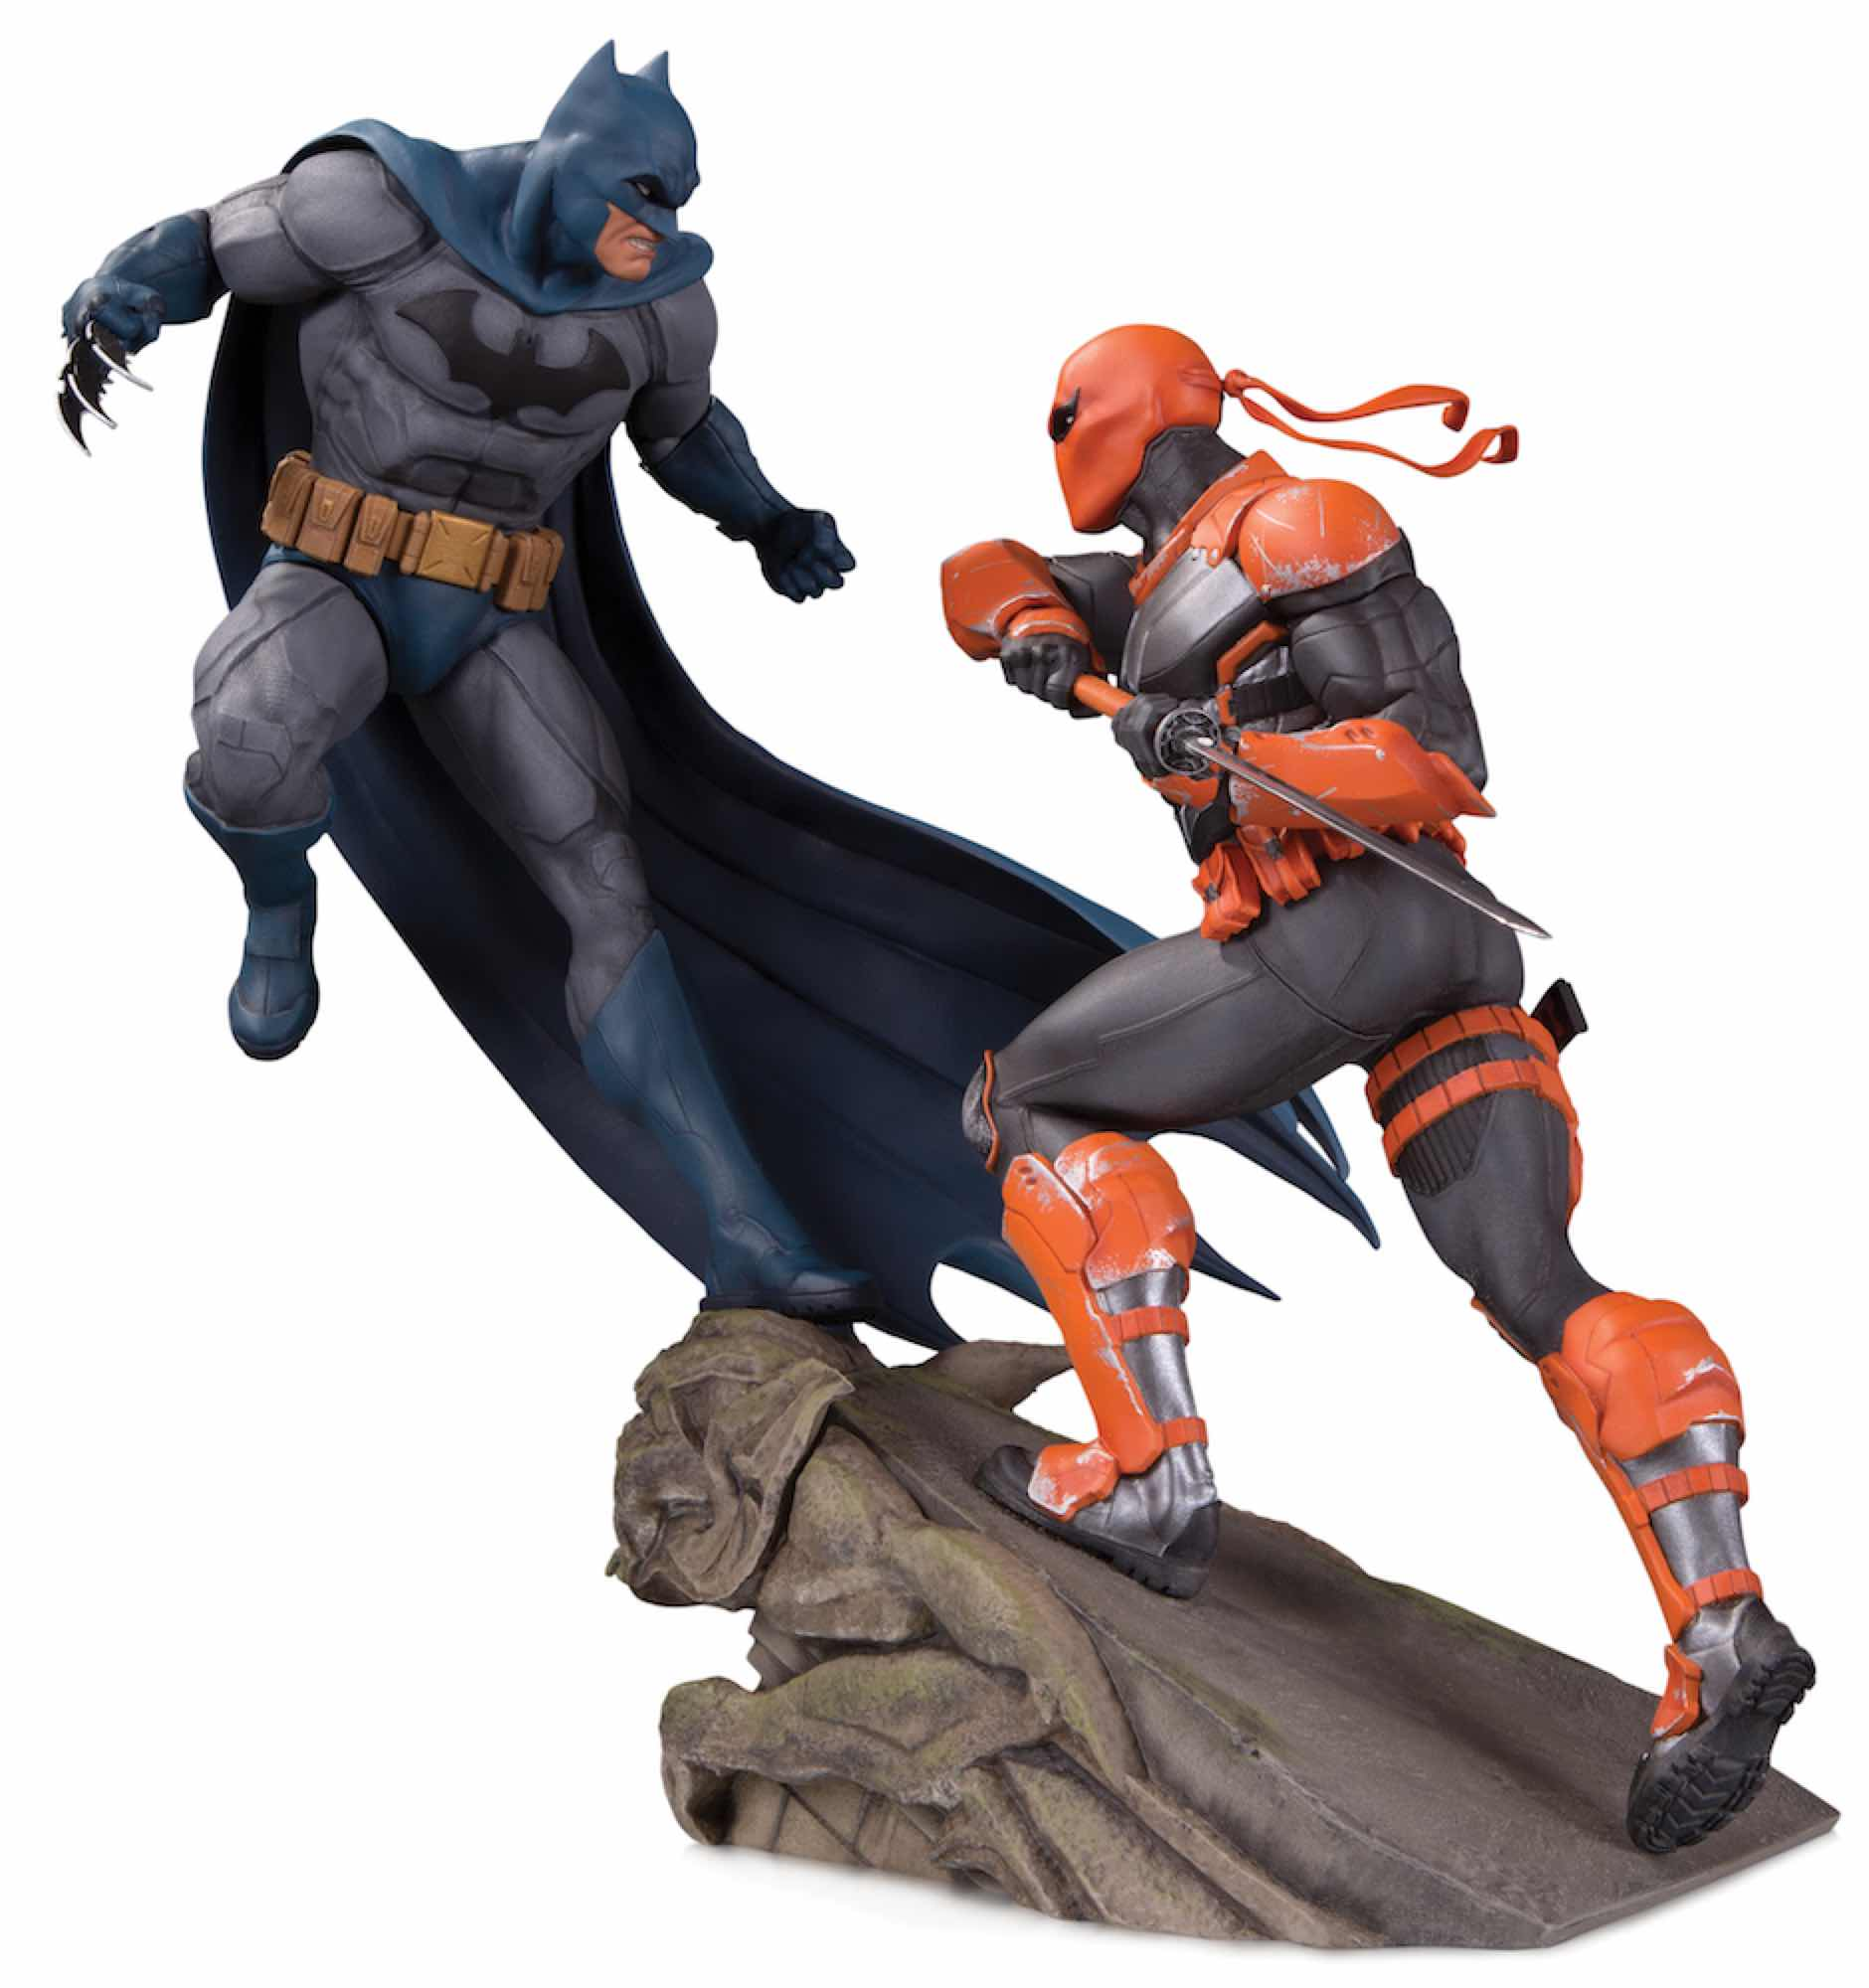 BATMAN VS DEATHSTROKE ESTATUA RESINA 30 CM BATTLE STATUE